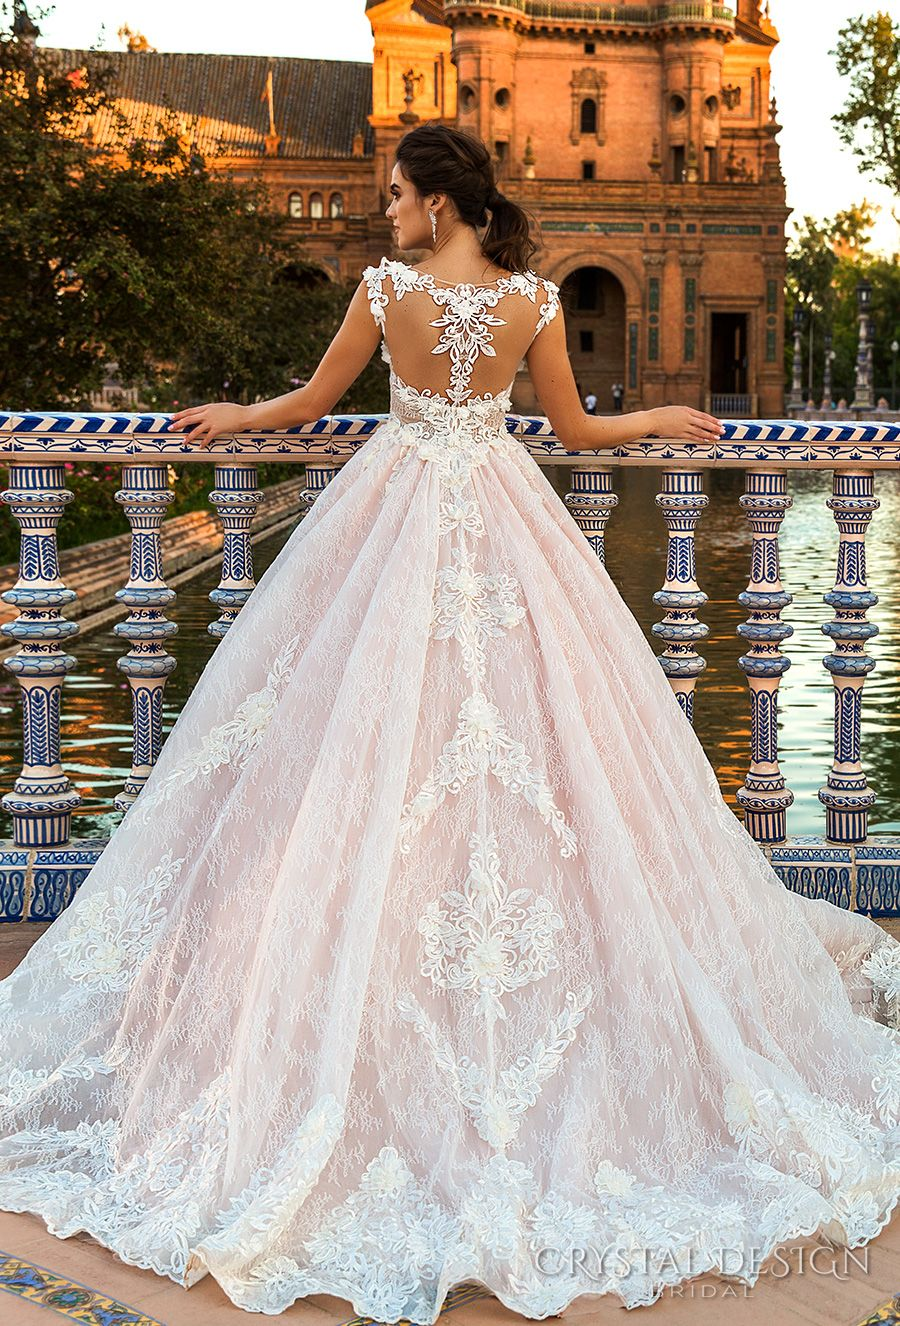 Crystal Design 2017 Bridal Sleeveless Illusion Boat Sweetheart Neckline Full Embellishment Pink Lace Princess Ball Gown A Line Wedding Dress Back